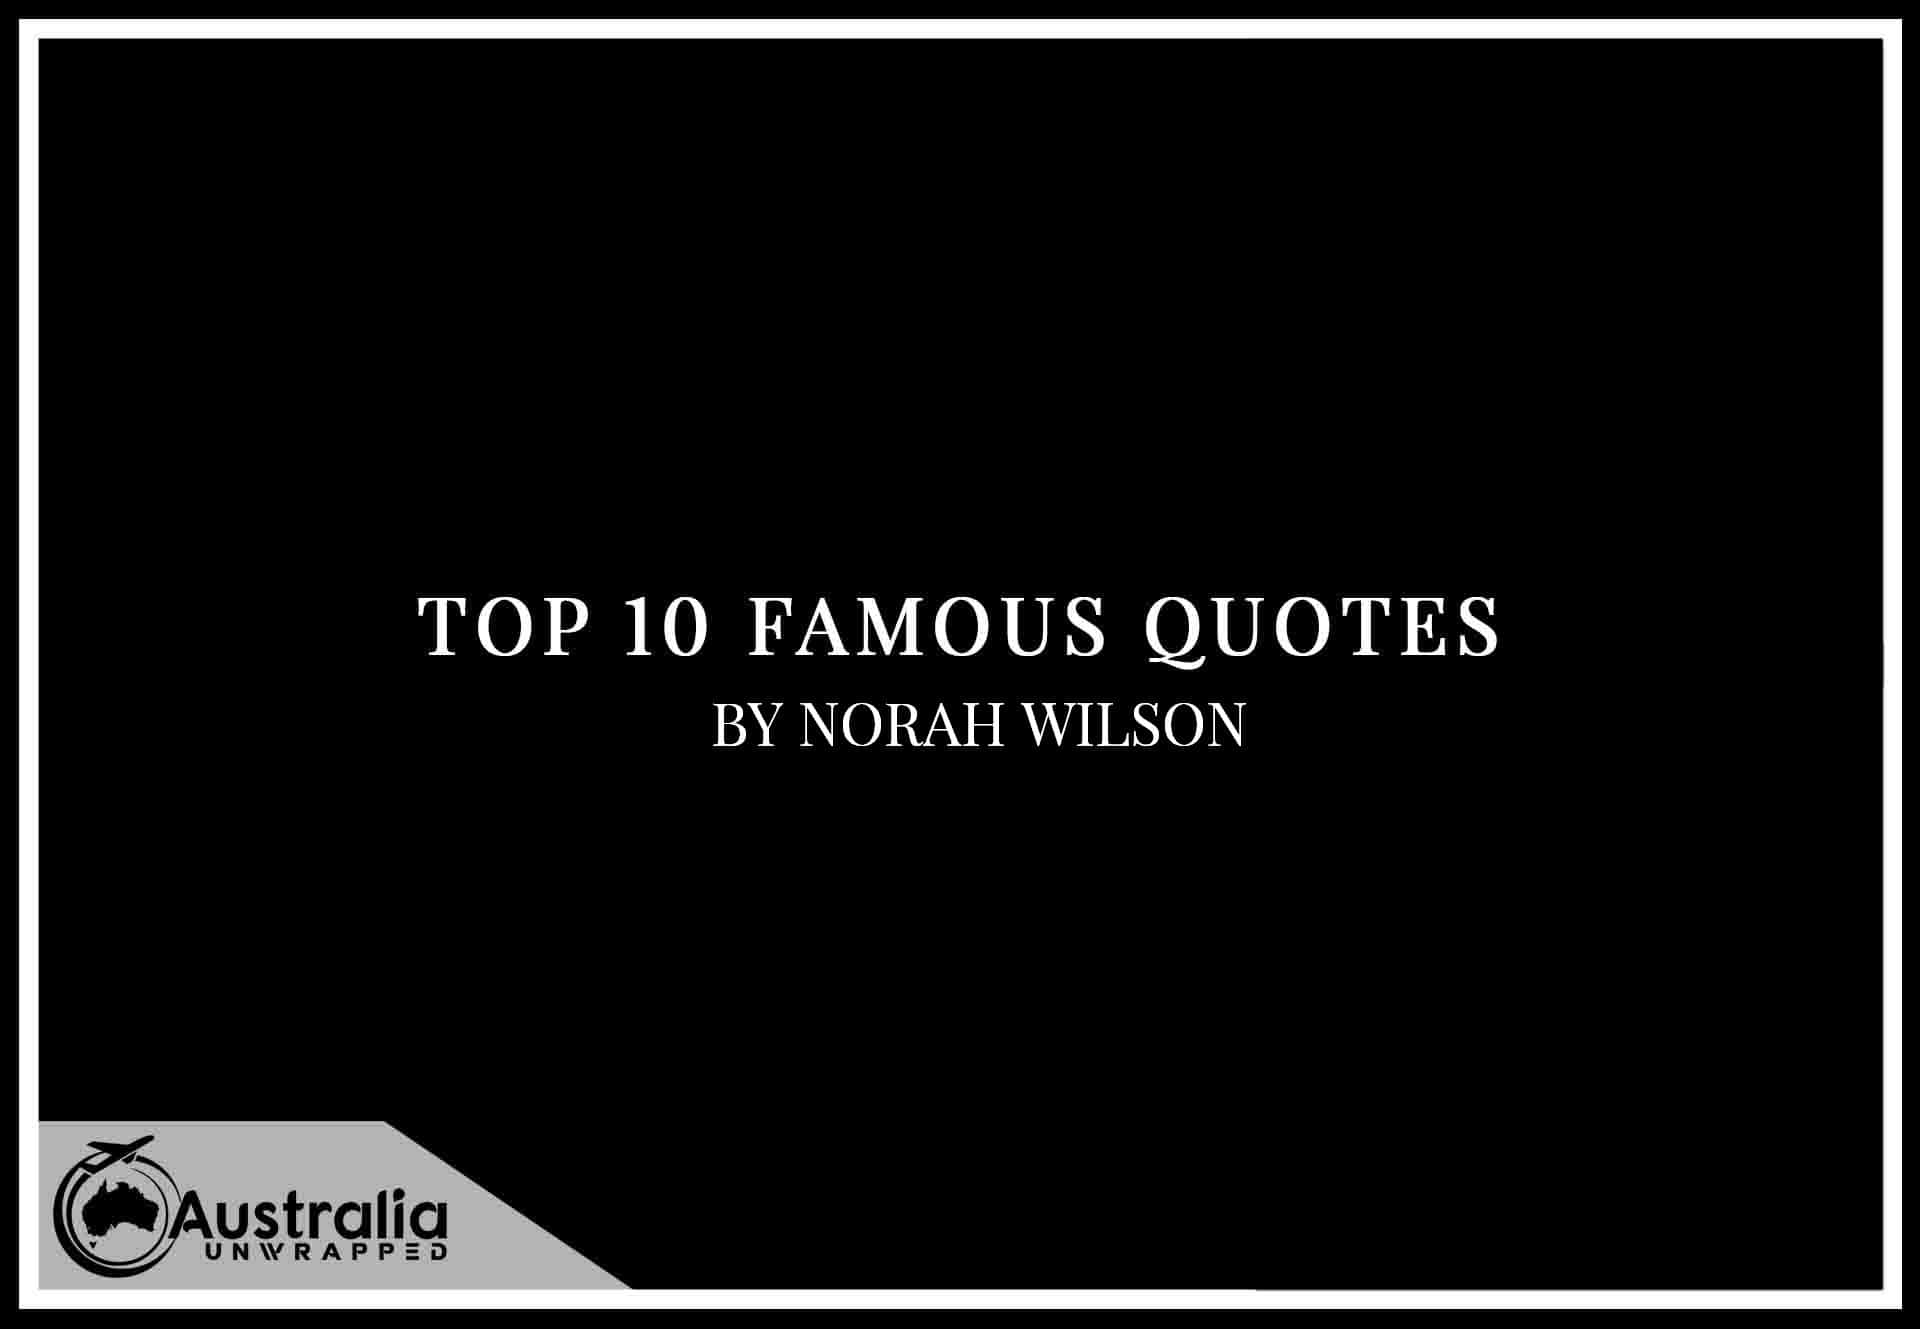 Top 10 Famous Quotes by Author Norah Wilson